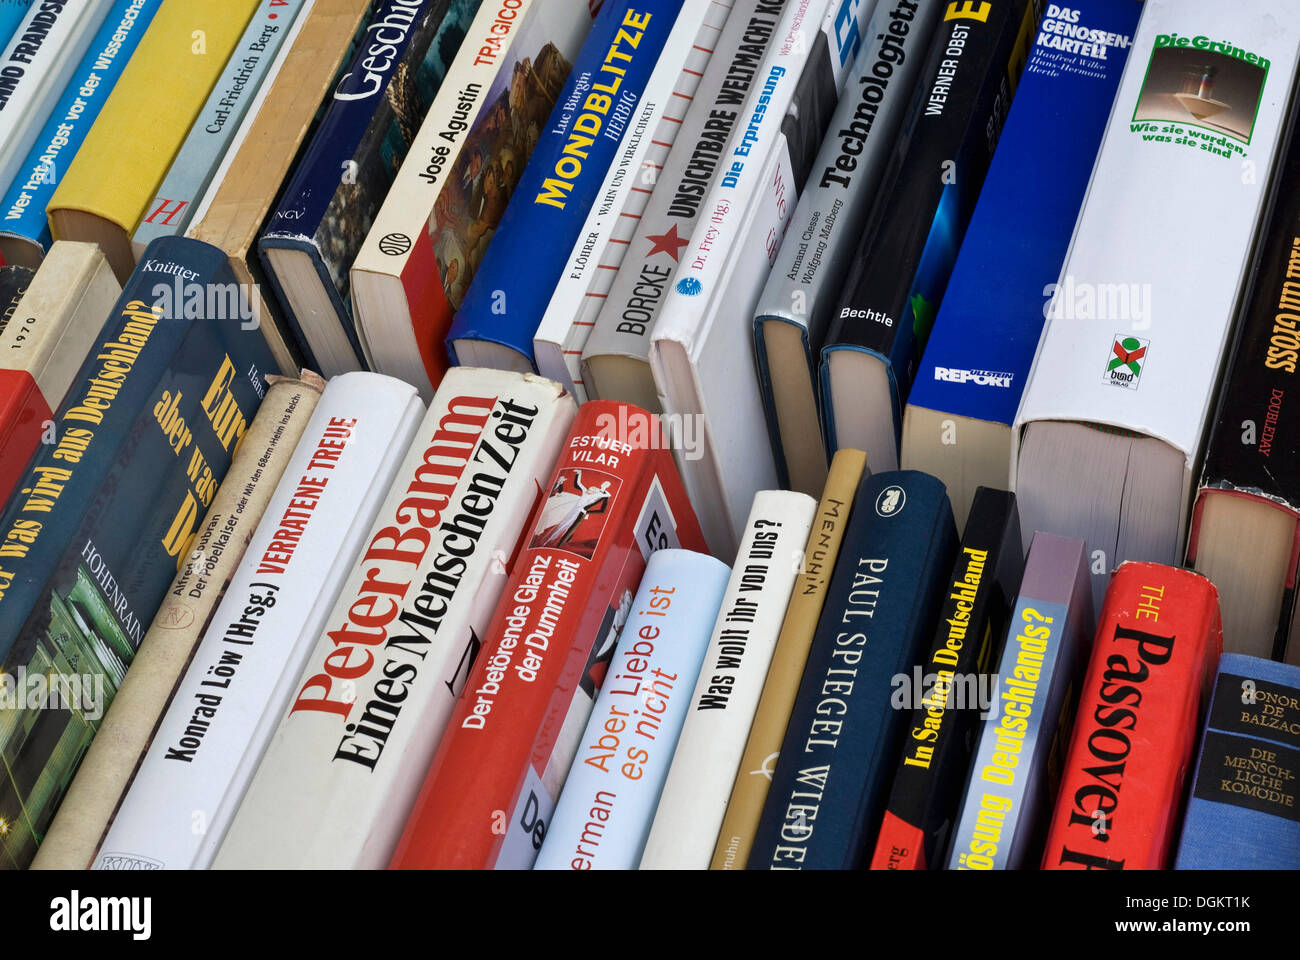 Antiquarian bookshop, books in box, spine, book sale - Stock Image